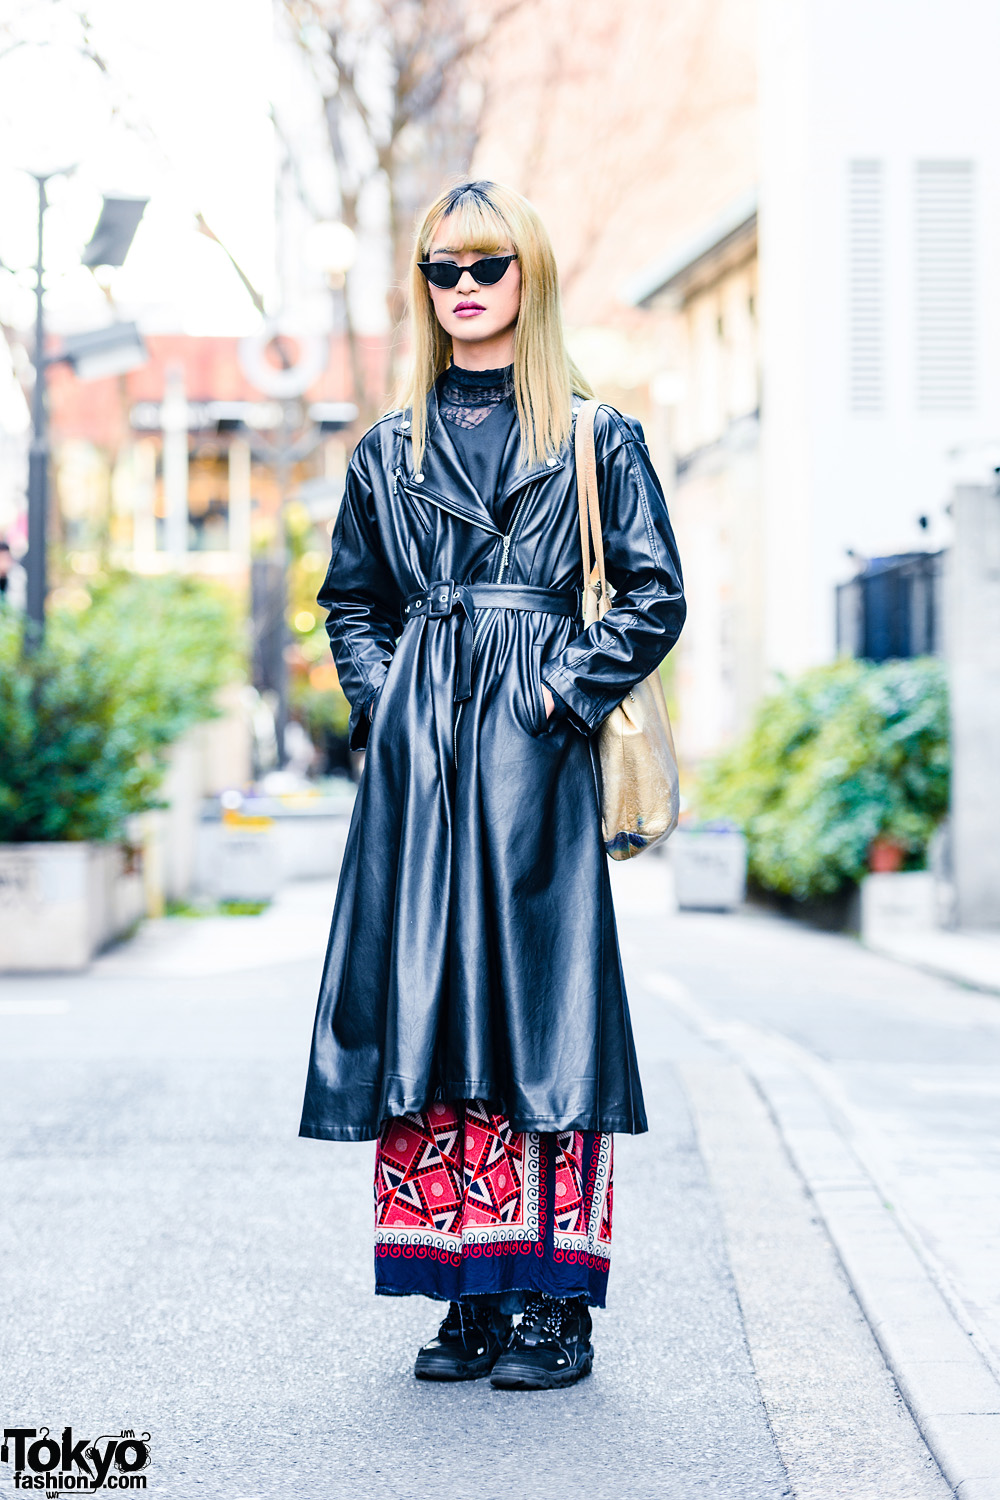 Gender Queer Japanese Fashion Designer Street Style w/ Belted Faux Leather Coat, Pameo Pose, Y's Pink Pants & 23.65 Sneakers